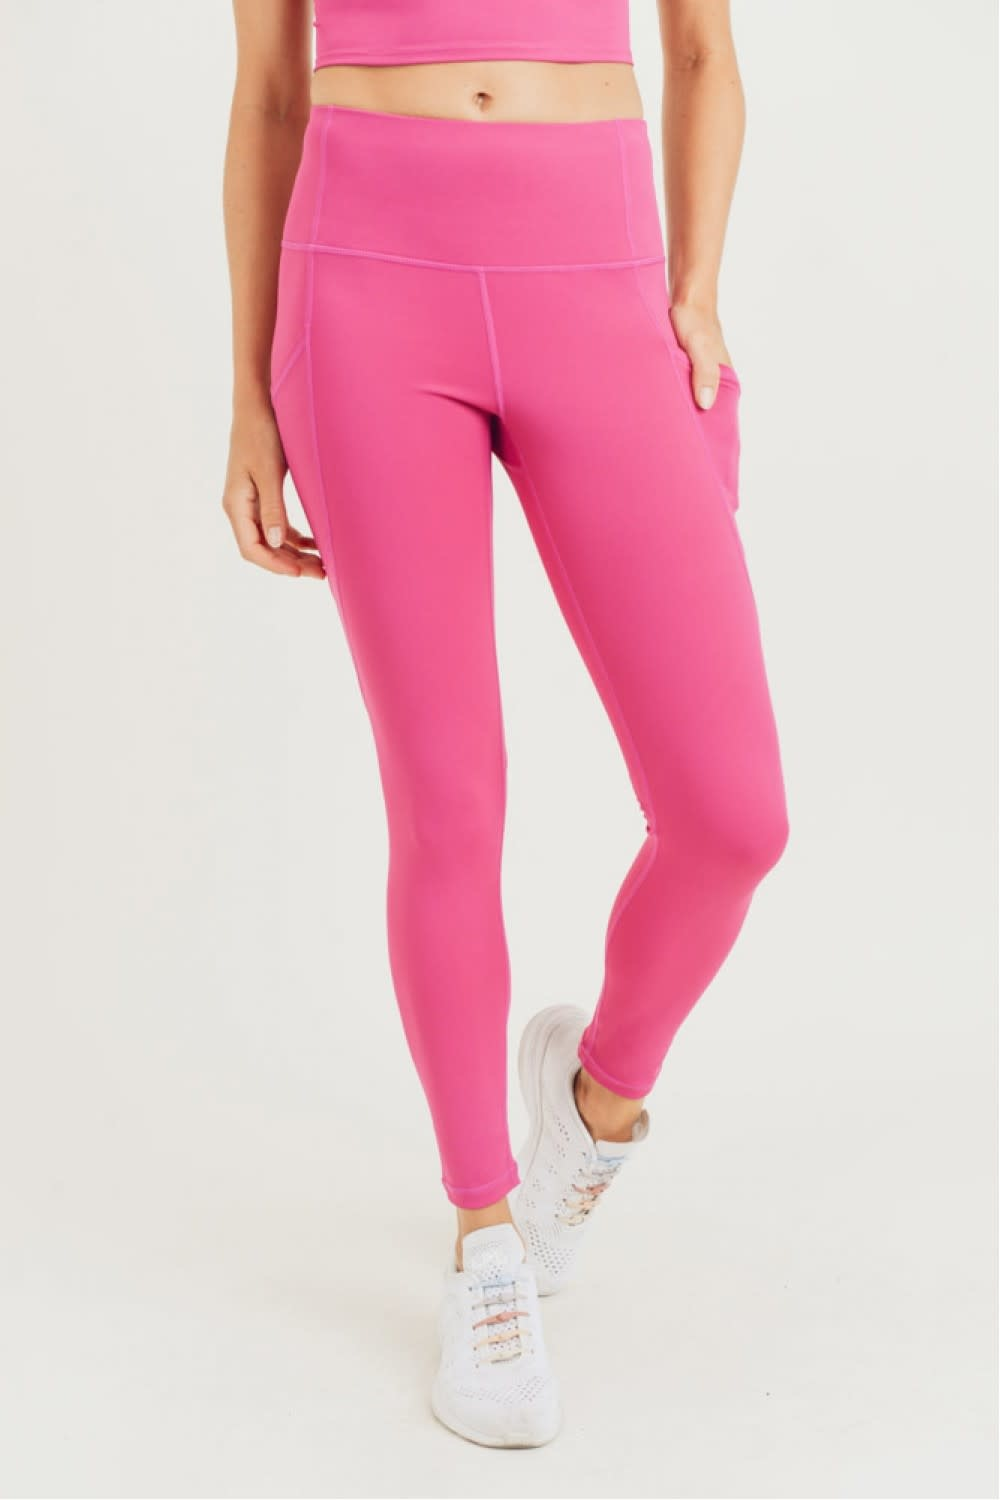 MONO B MALIA FUSCHIA HIGH-WAIST LEGGINGS